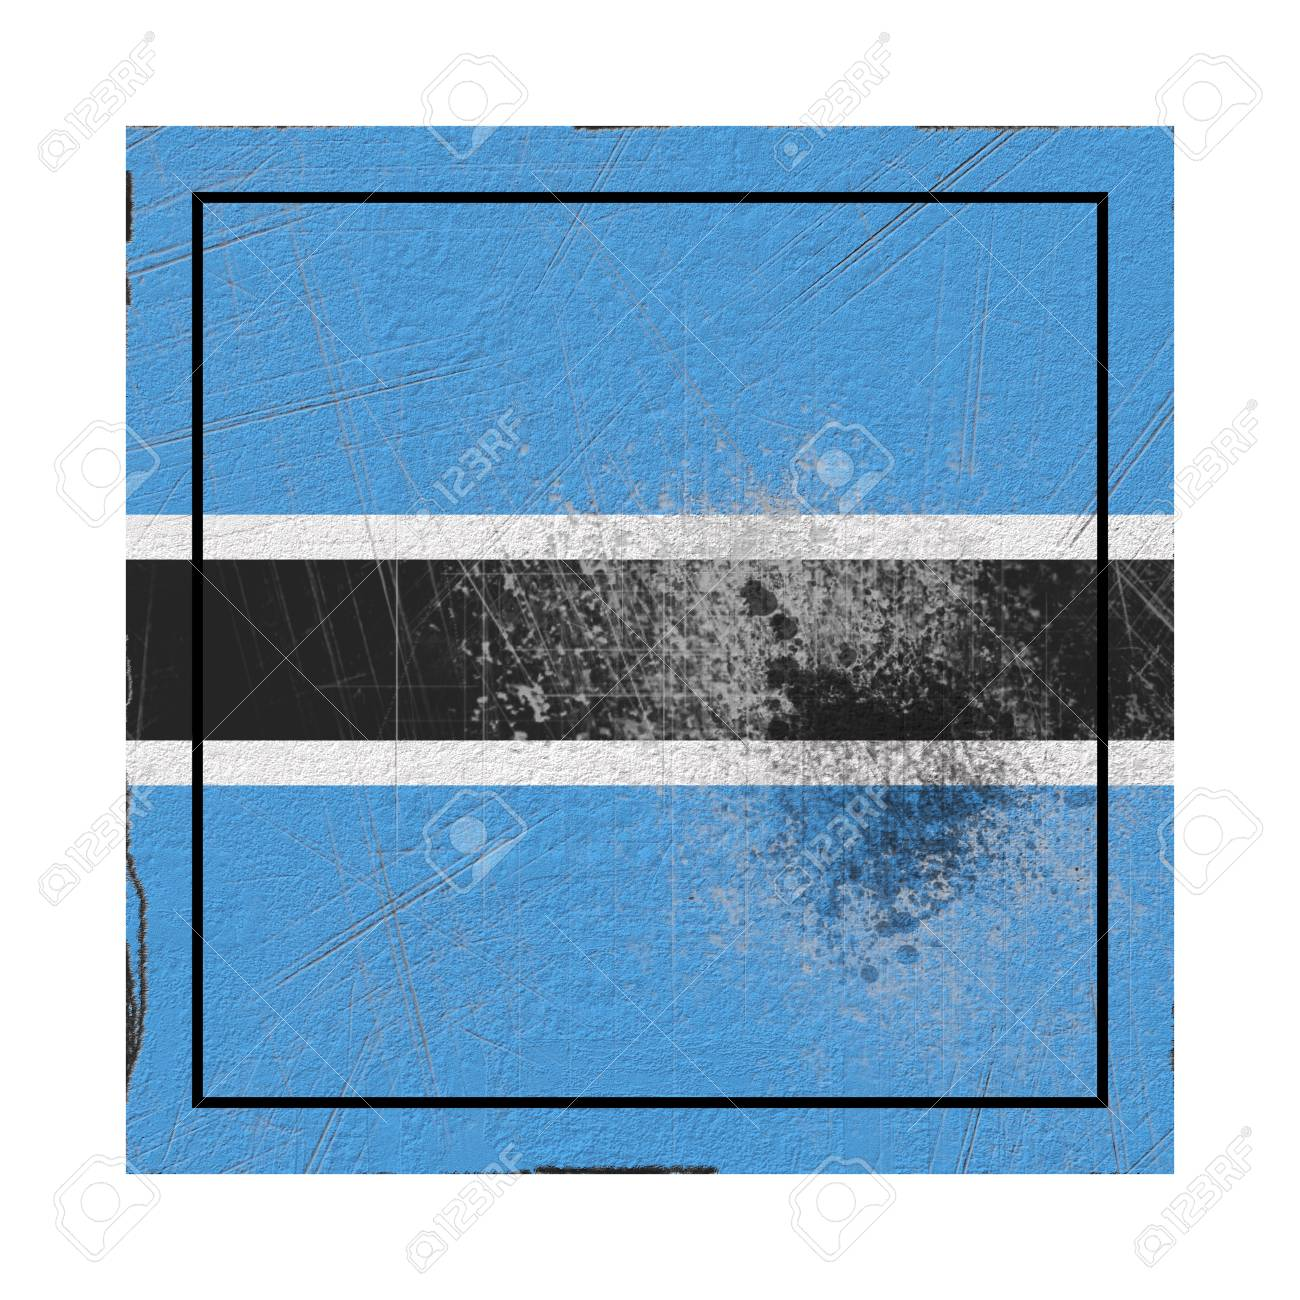 3d rendering of an old Botswana flag in a concrete square